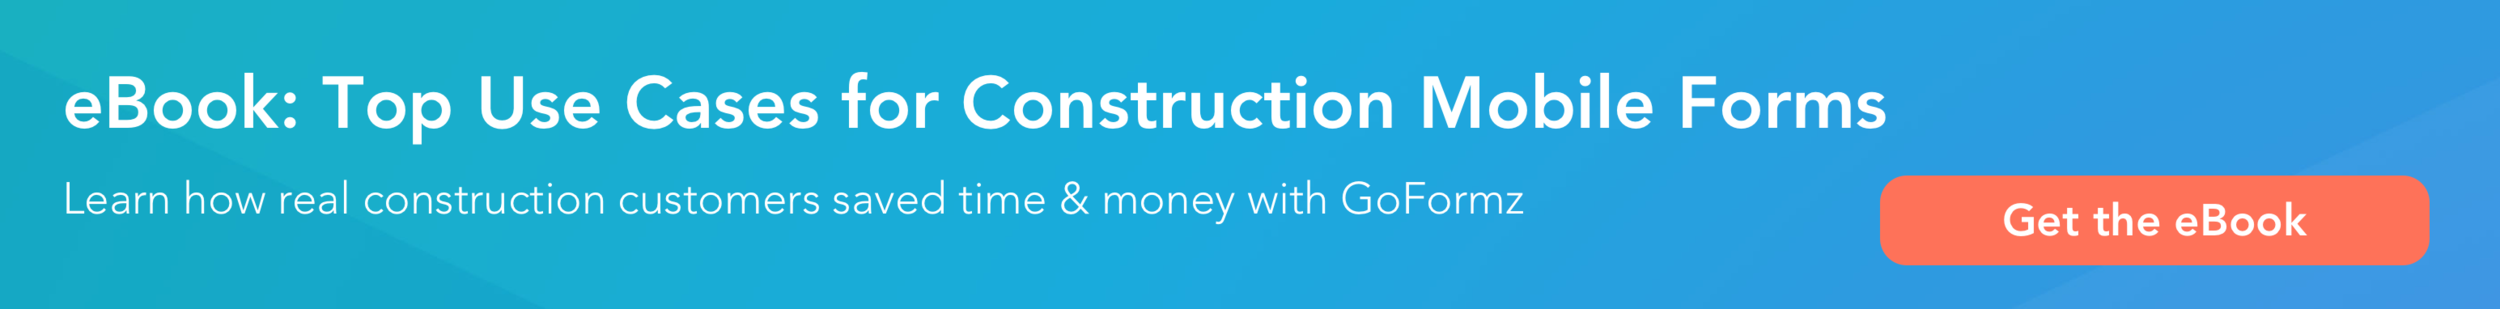 Click here to get the free eBook: Top use cases for construction mobile forms